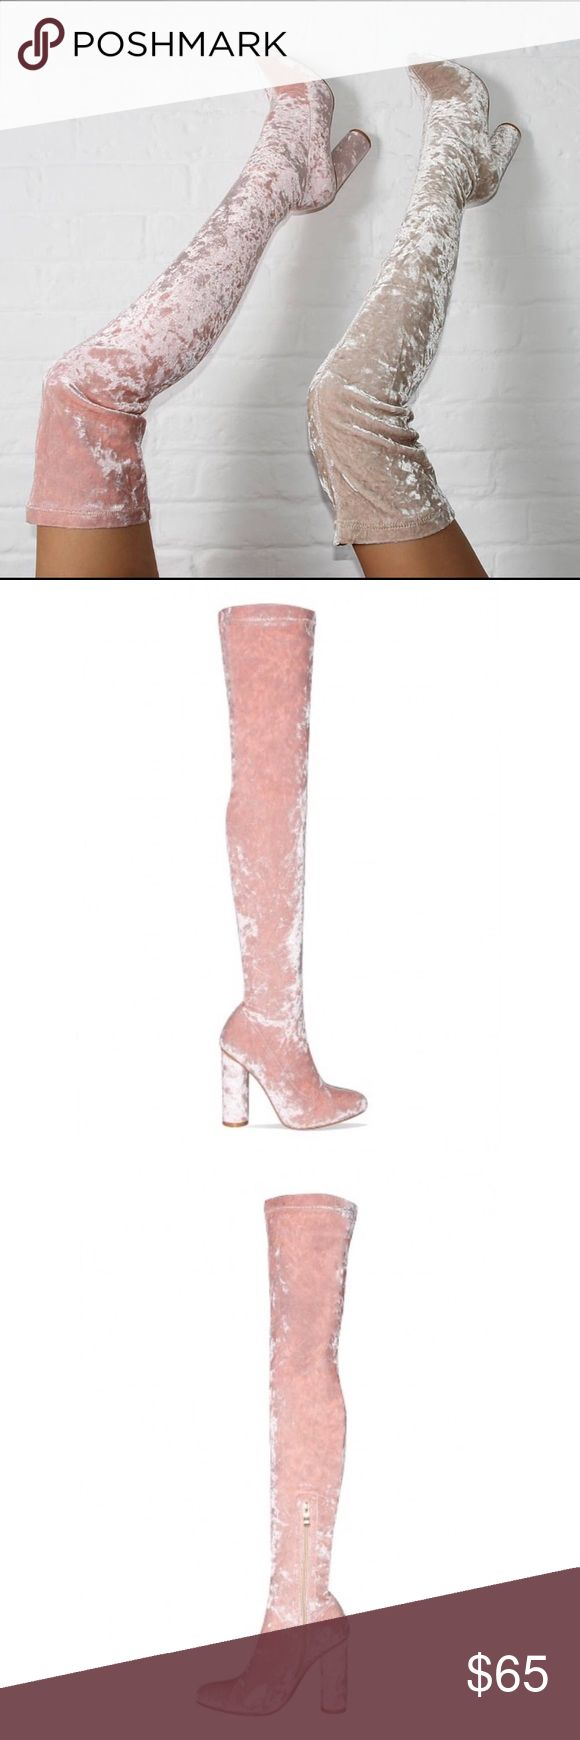 NIB Simmi London Luna Thigh High New never been worn pink velvet thigh high boots Simmi London Shoes Over the Knee Boots